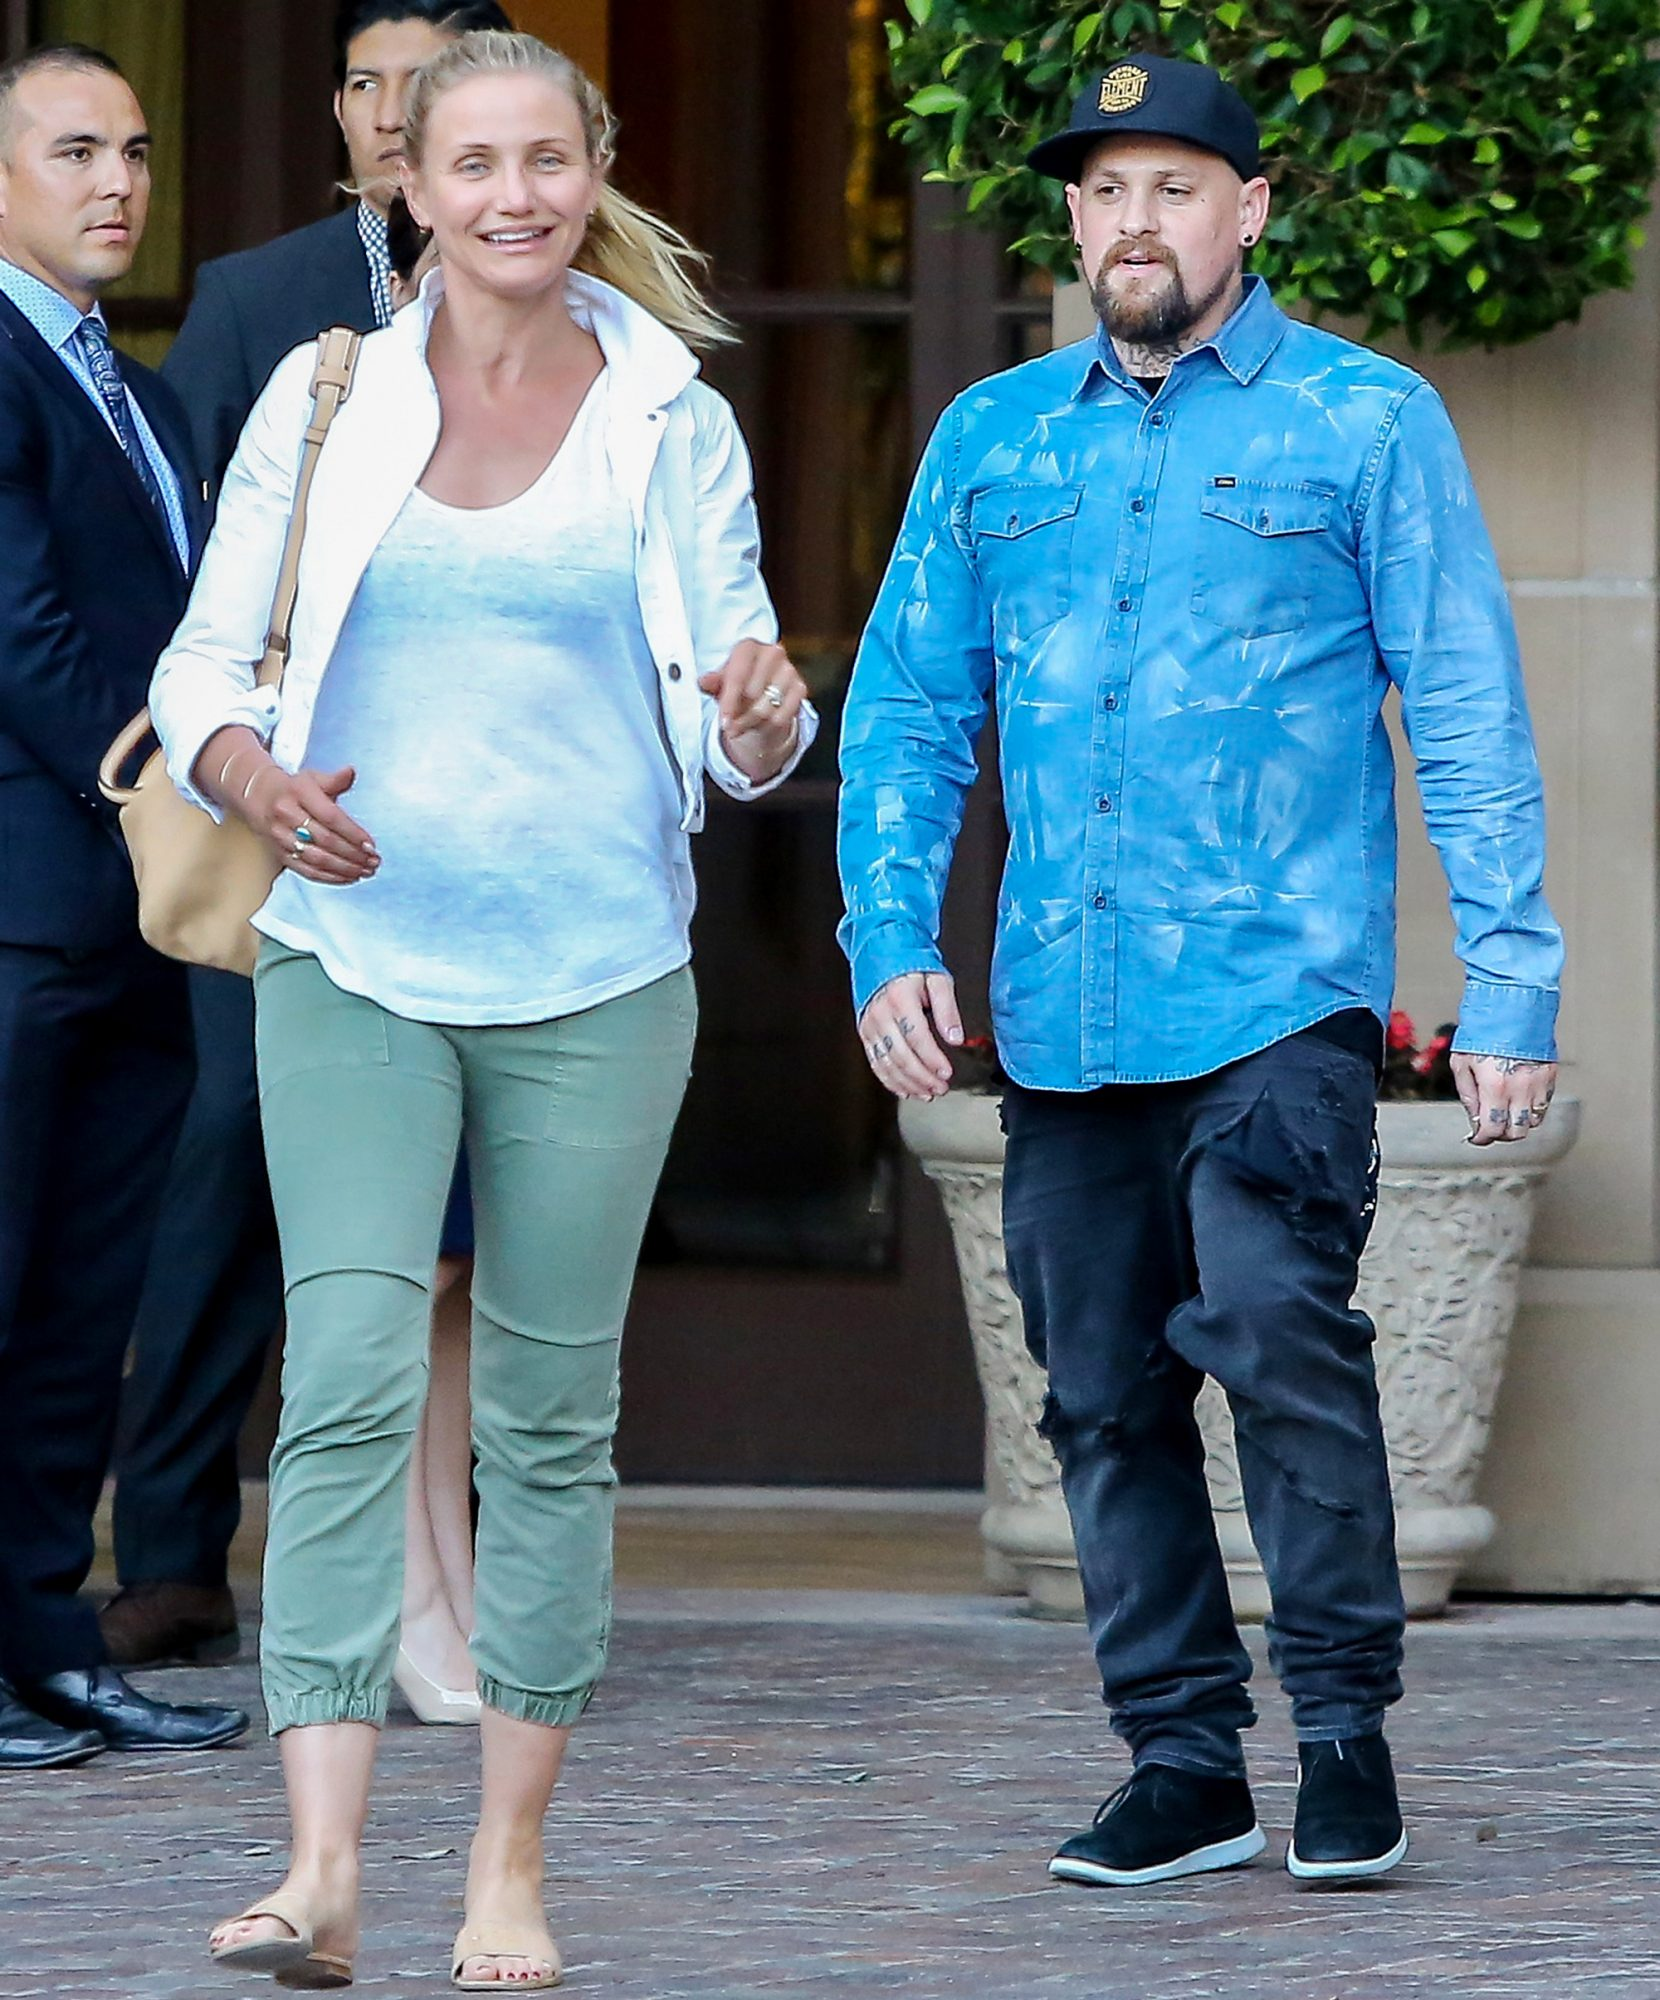 Cameron Diaz and husband Benji Madden